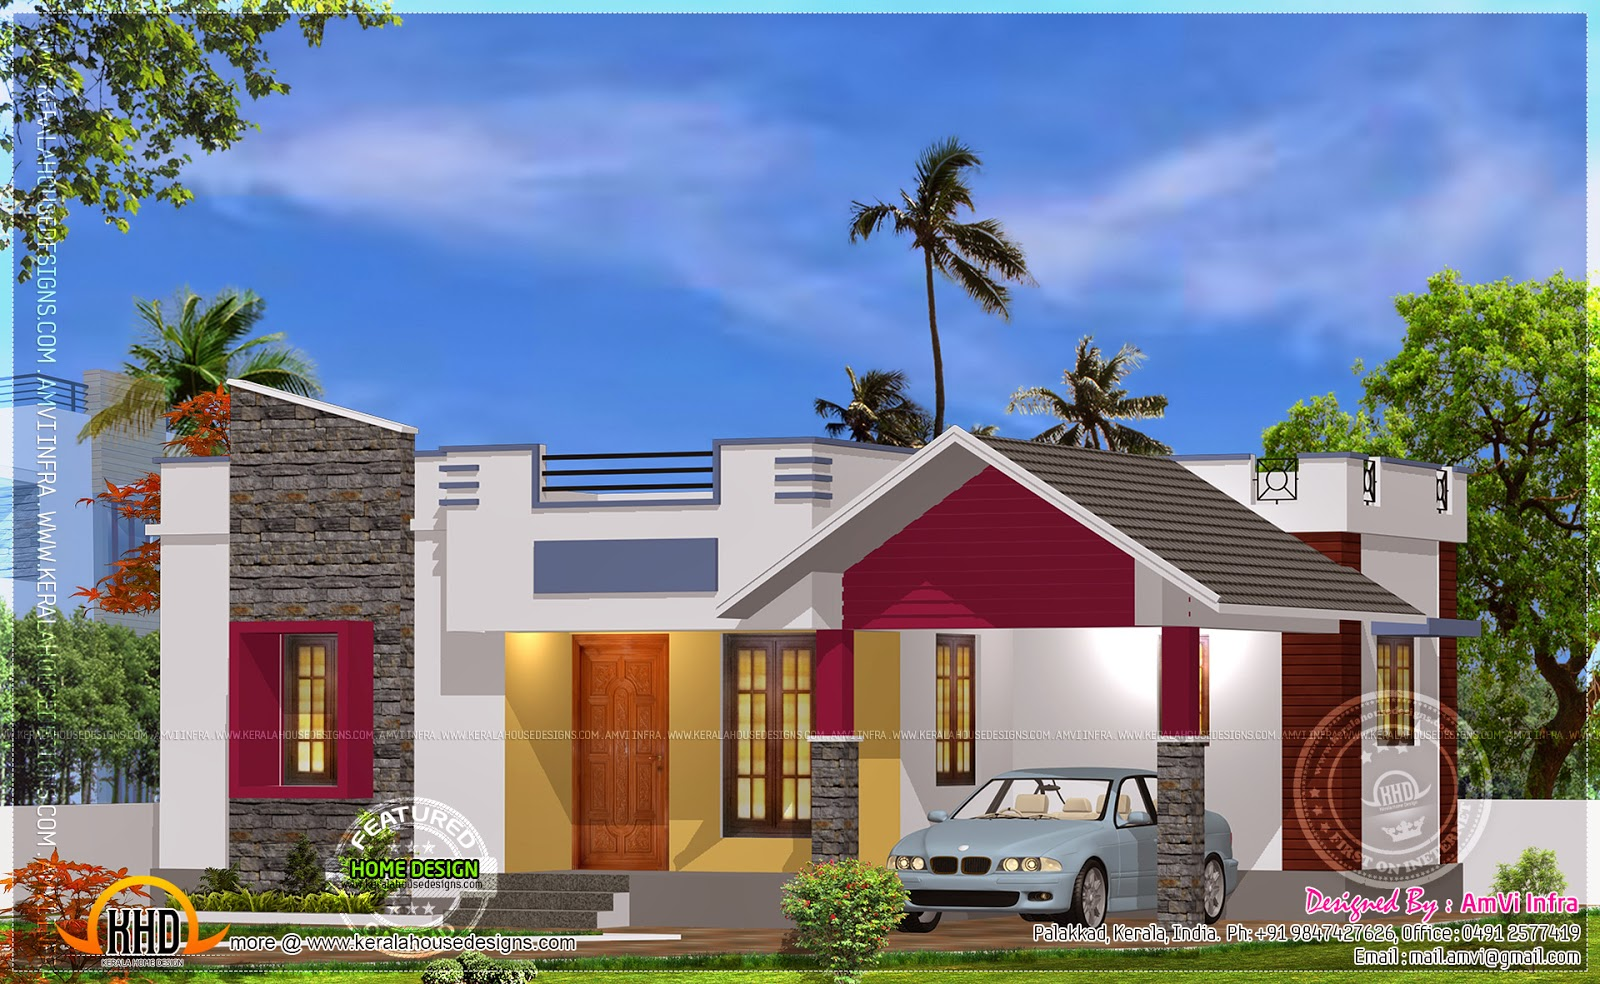 900 sqfeet free single storied house Kerala home design and